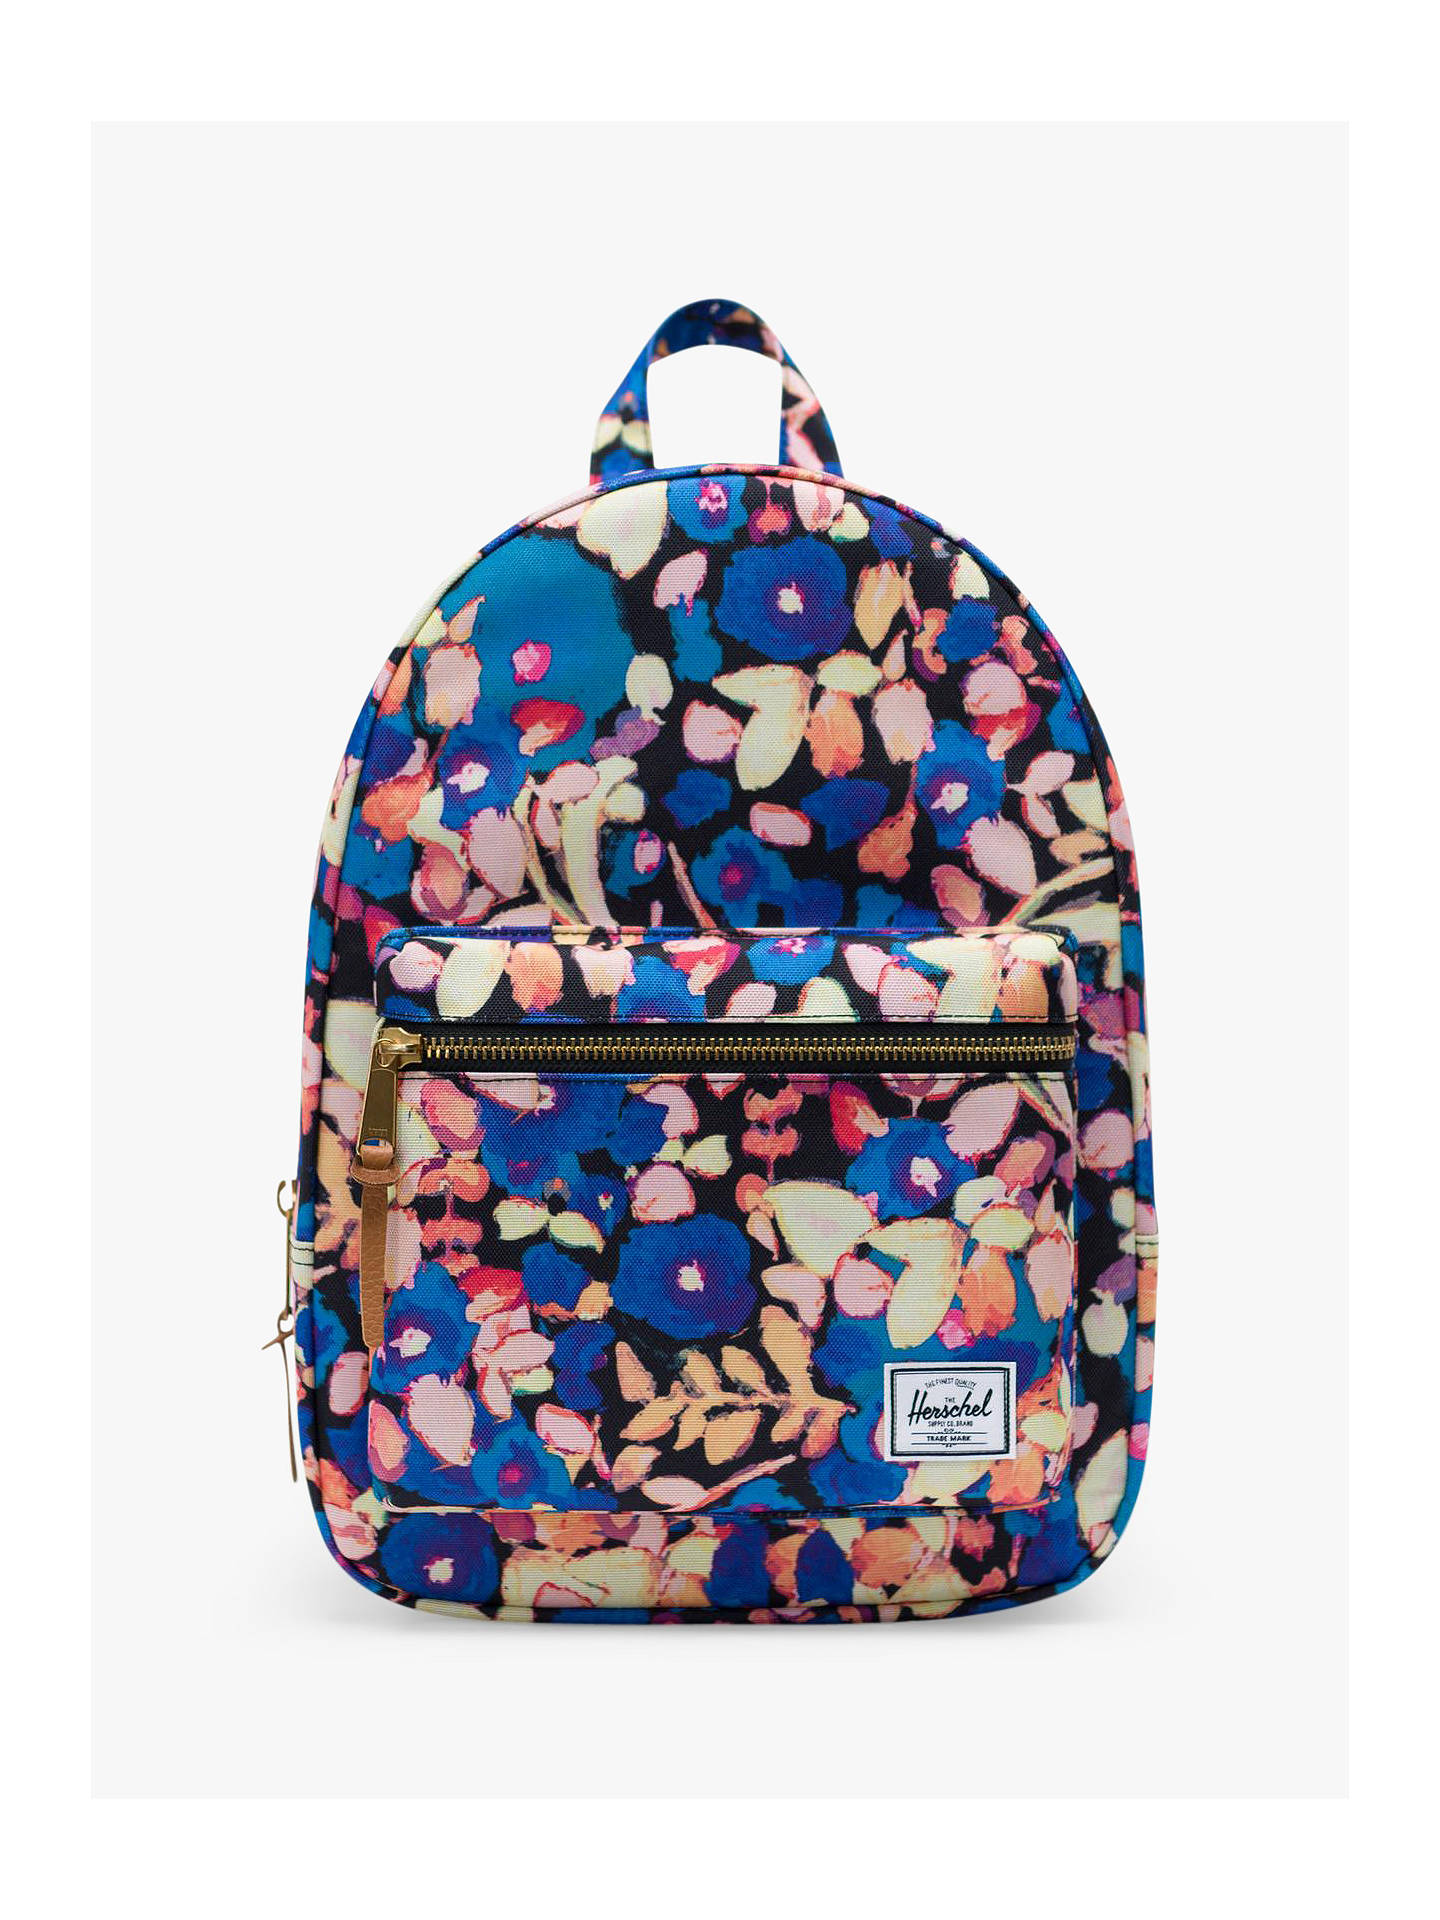 7198a2c0478 Buy Herschel Supply Co. Grove Small Floral Backpack